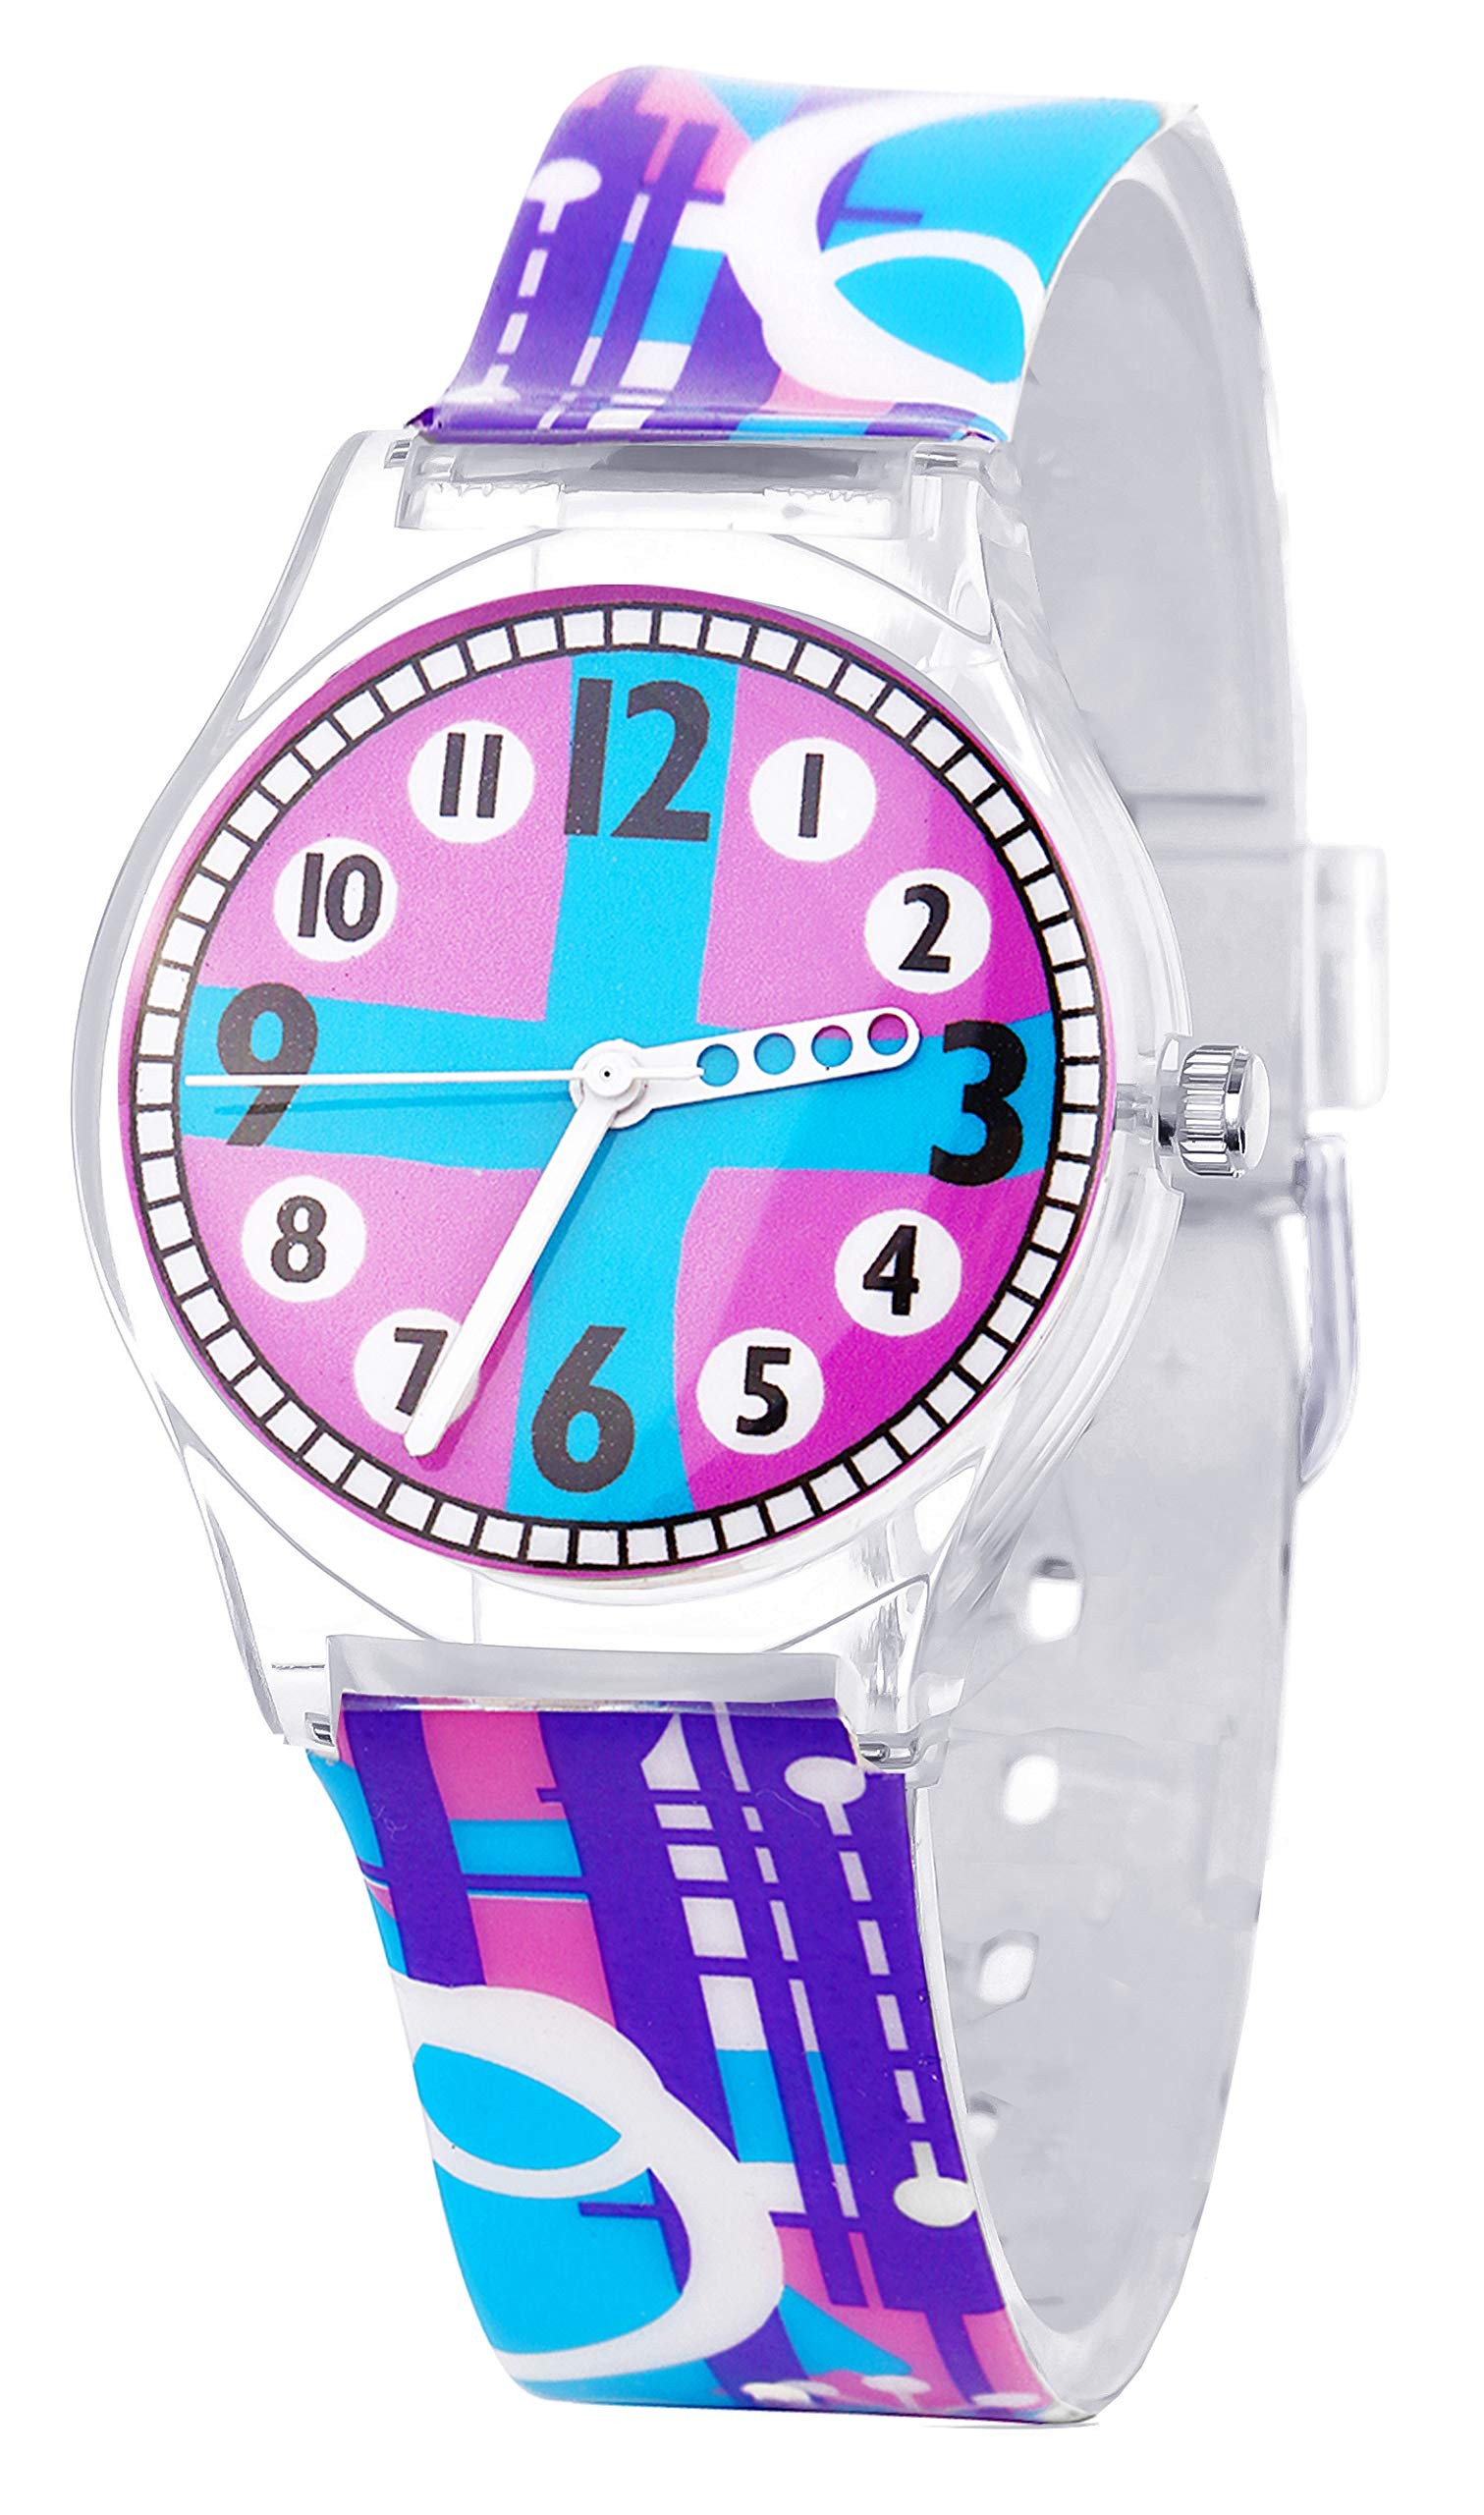 Tonnier Watches Resin Super Soft Band Student Watches for Teenagers Young Girls Starry (Purple Dream)/ Youth Watch by Tonnier